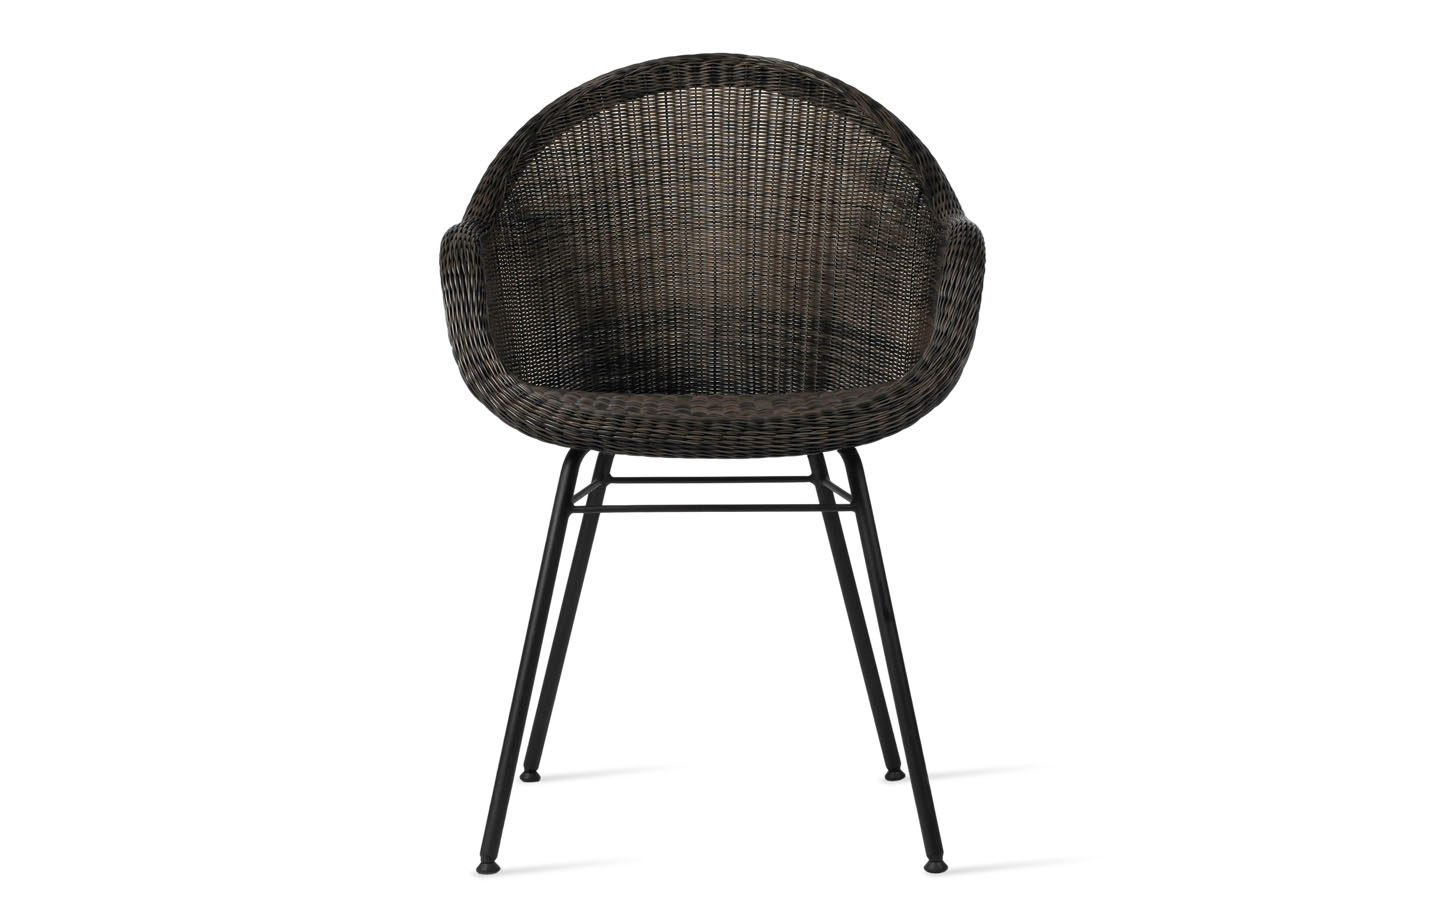 Edgard-dining-chair--Mocca-steel-base-04